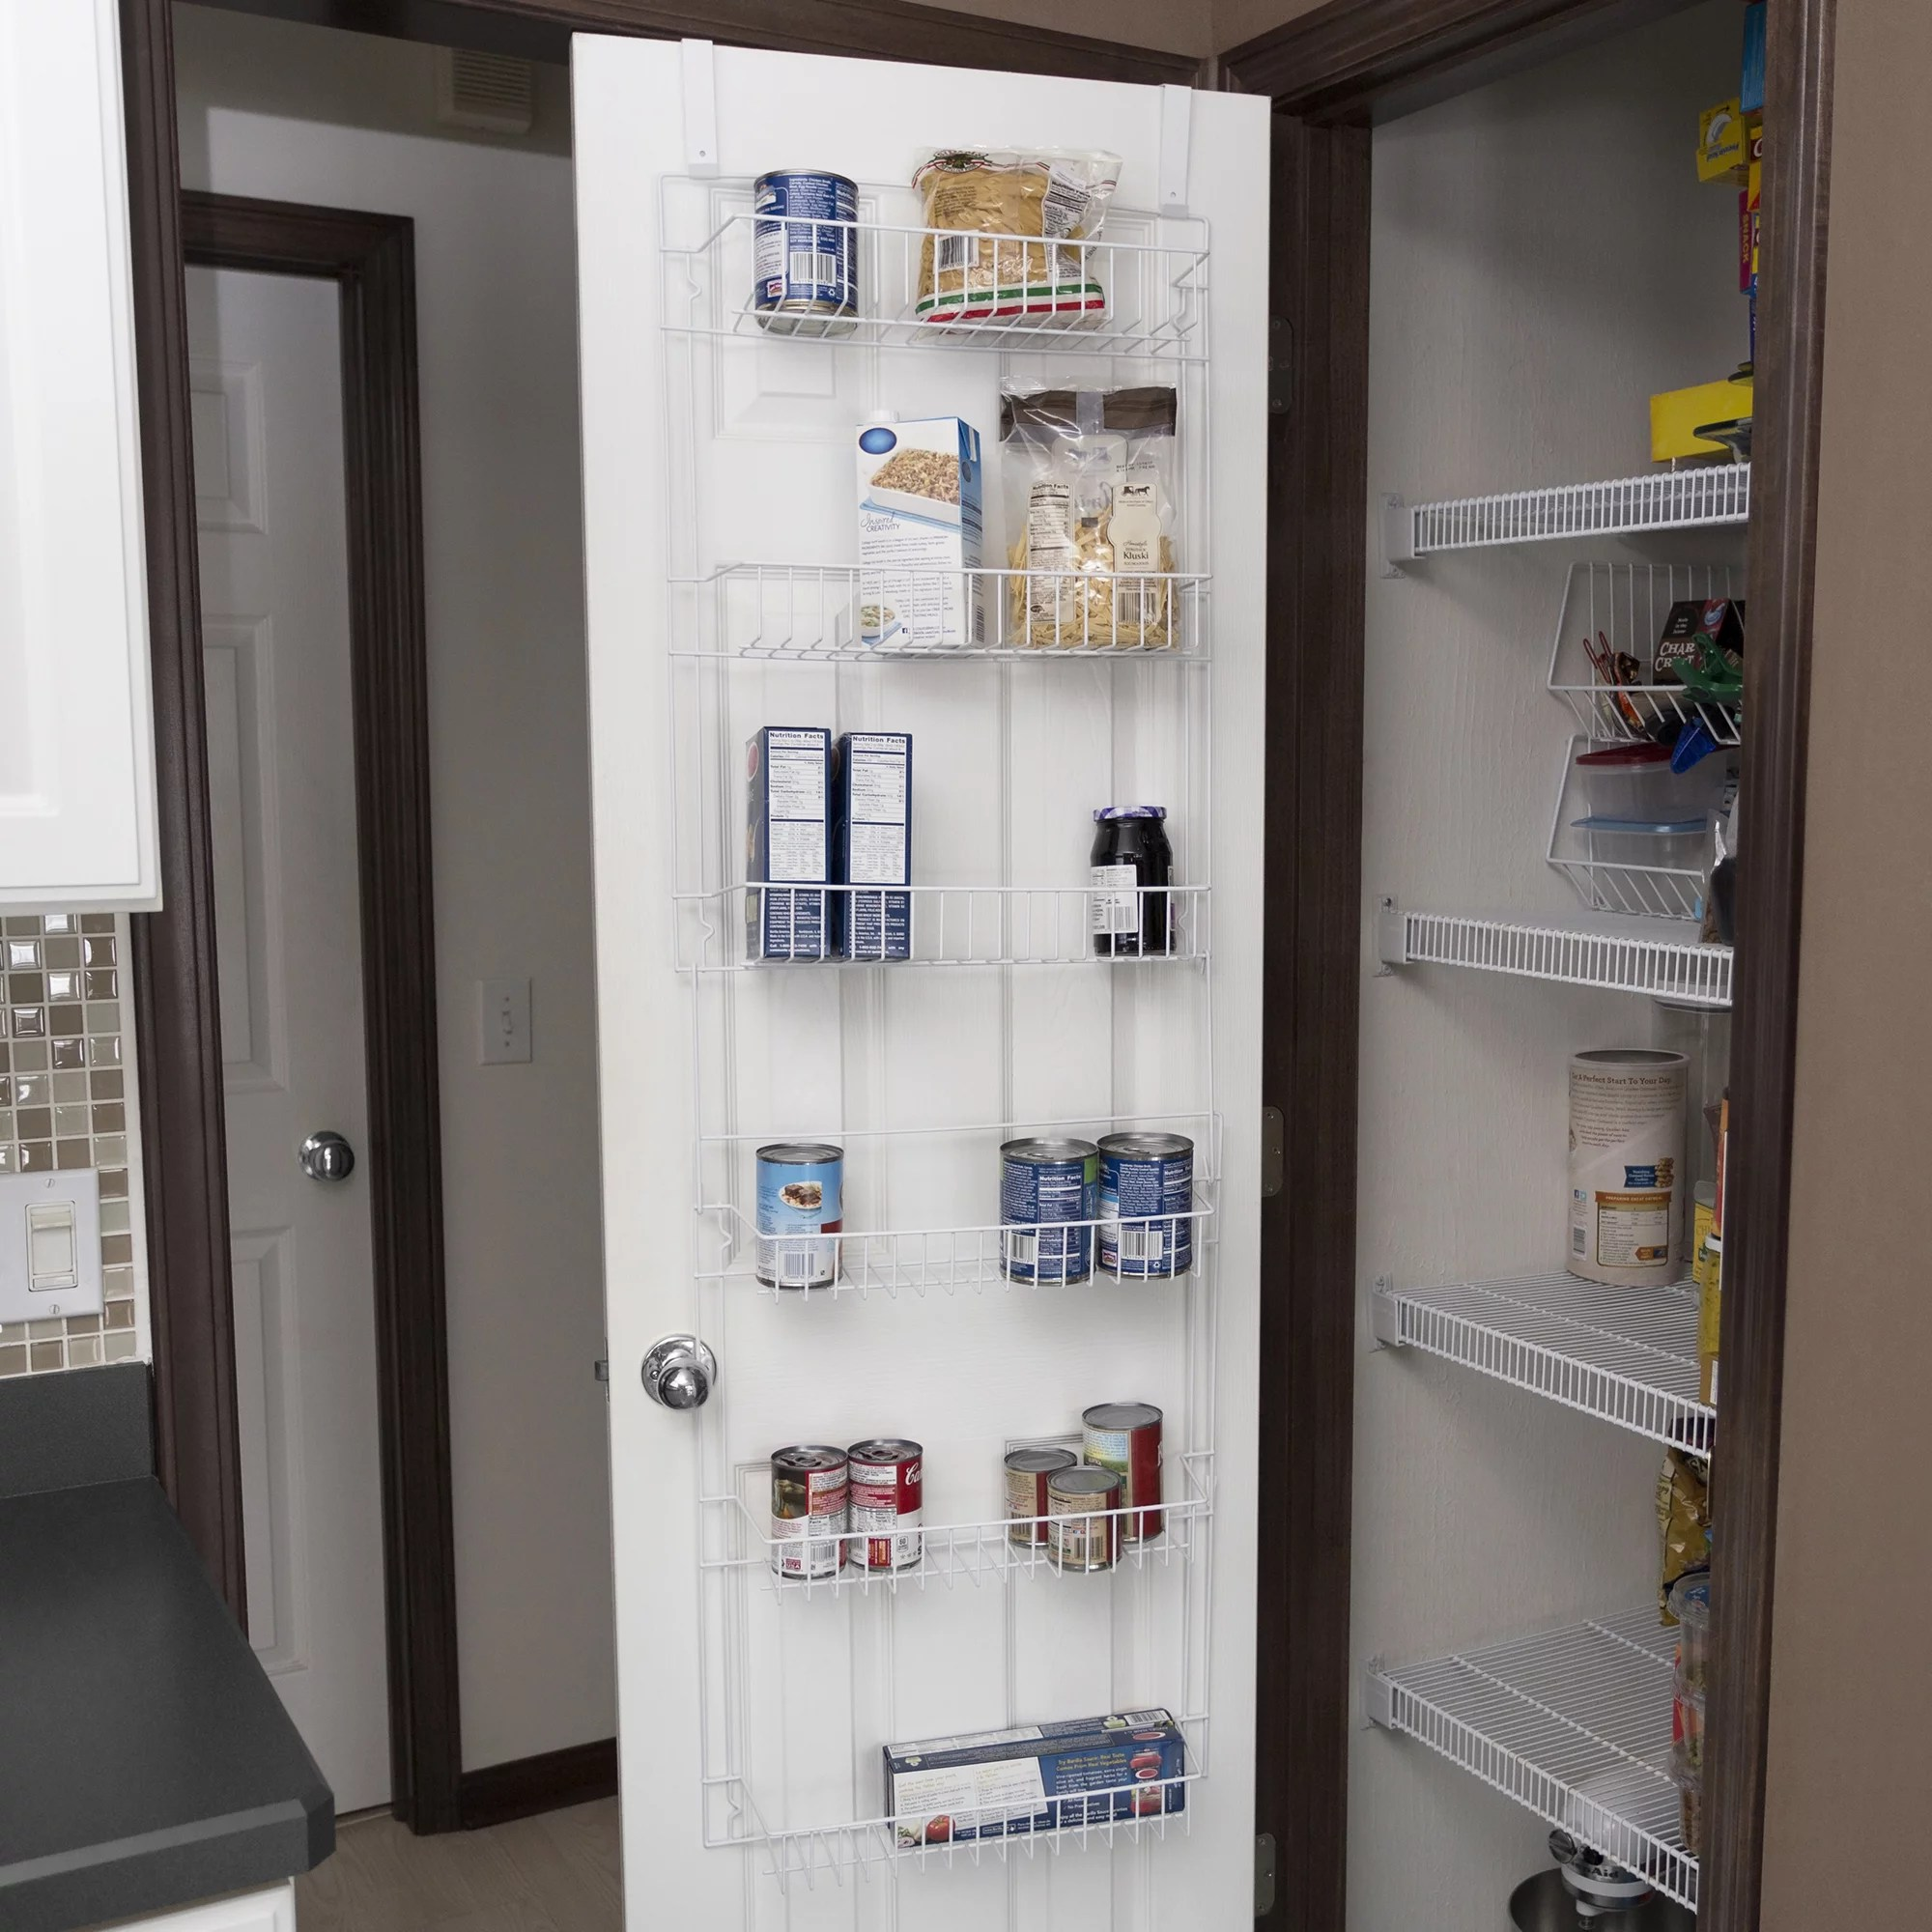 Closet Organizer W 6 Shelves Over The Door Pantry Organizer And Bathroom Organizer By Lavish Home Walmart Com Walmart Com